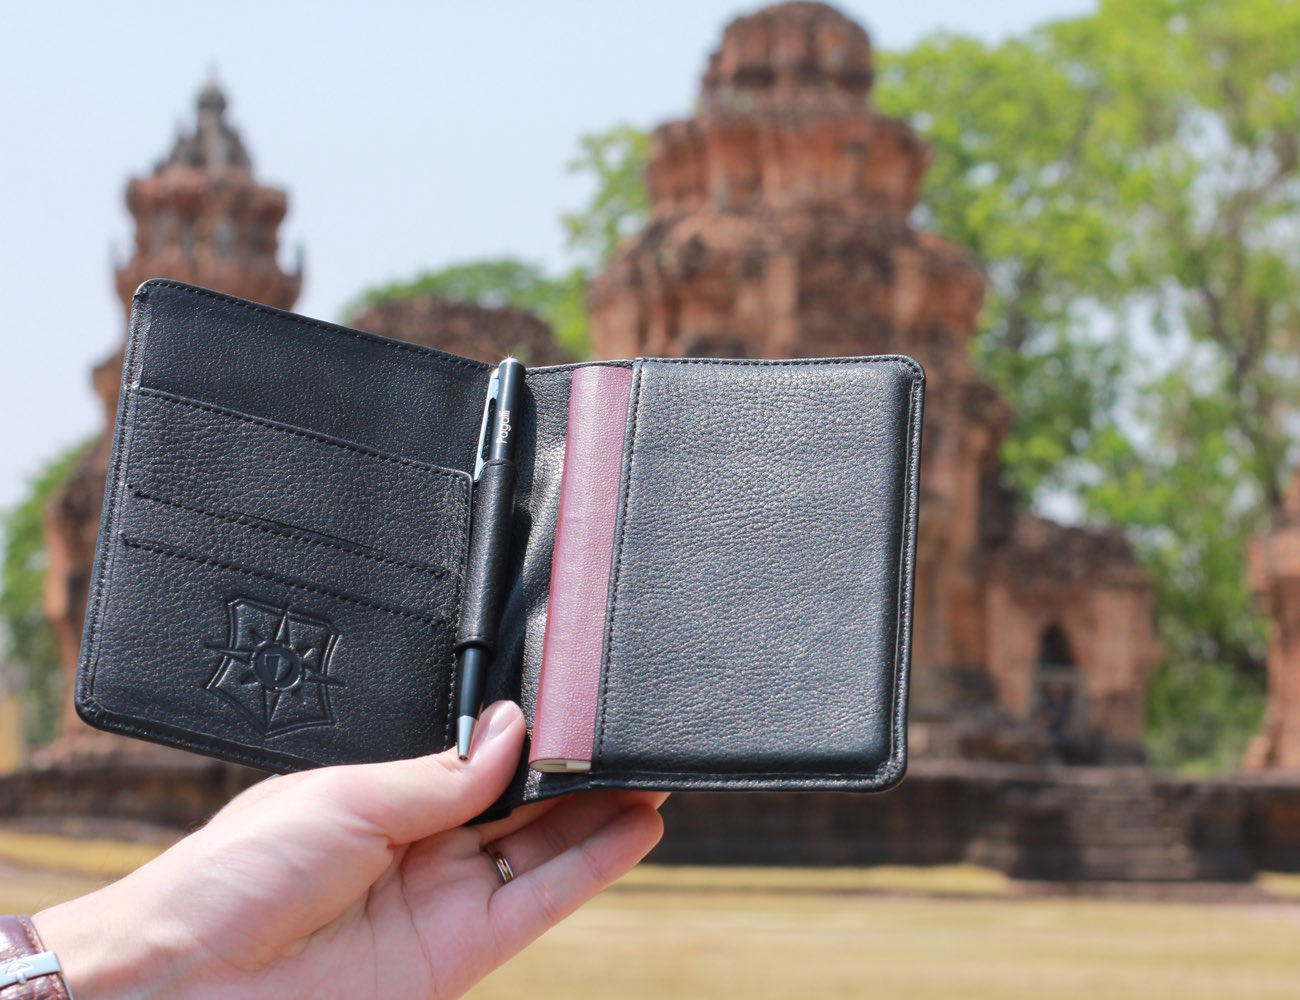 The Pagalli Project – Premium Wallets Offer World's Strongest Protection against ID Theft